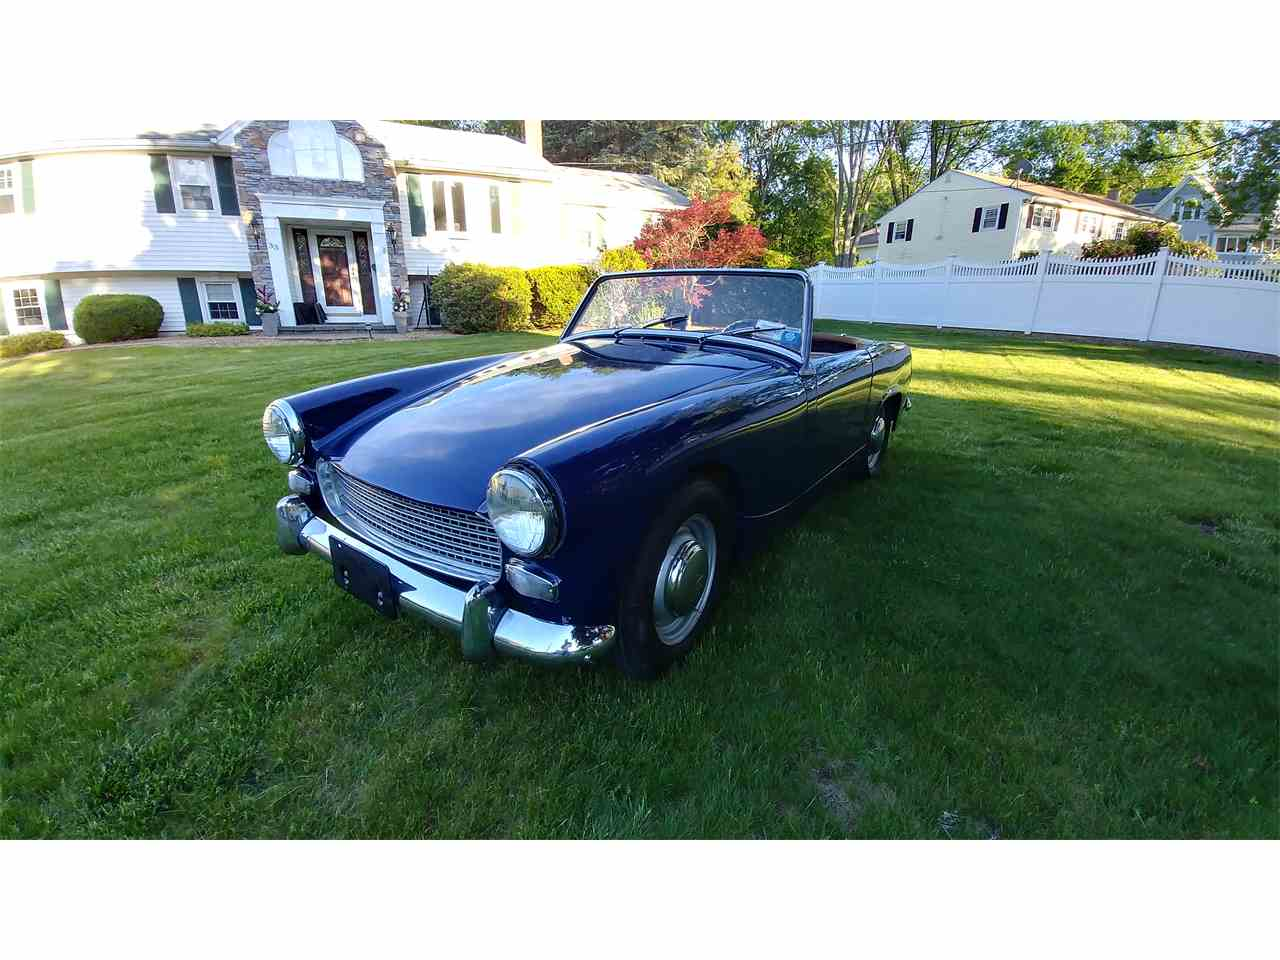 1962 Austin-Healey Sprite for Sale - CC-994158